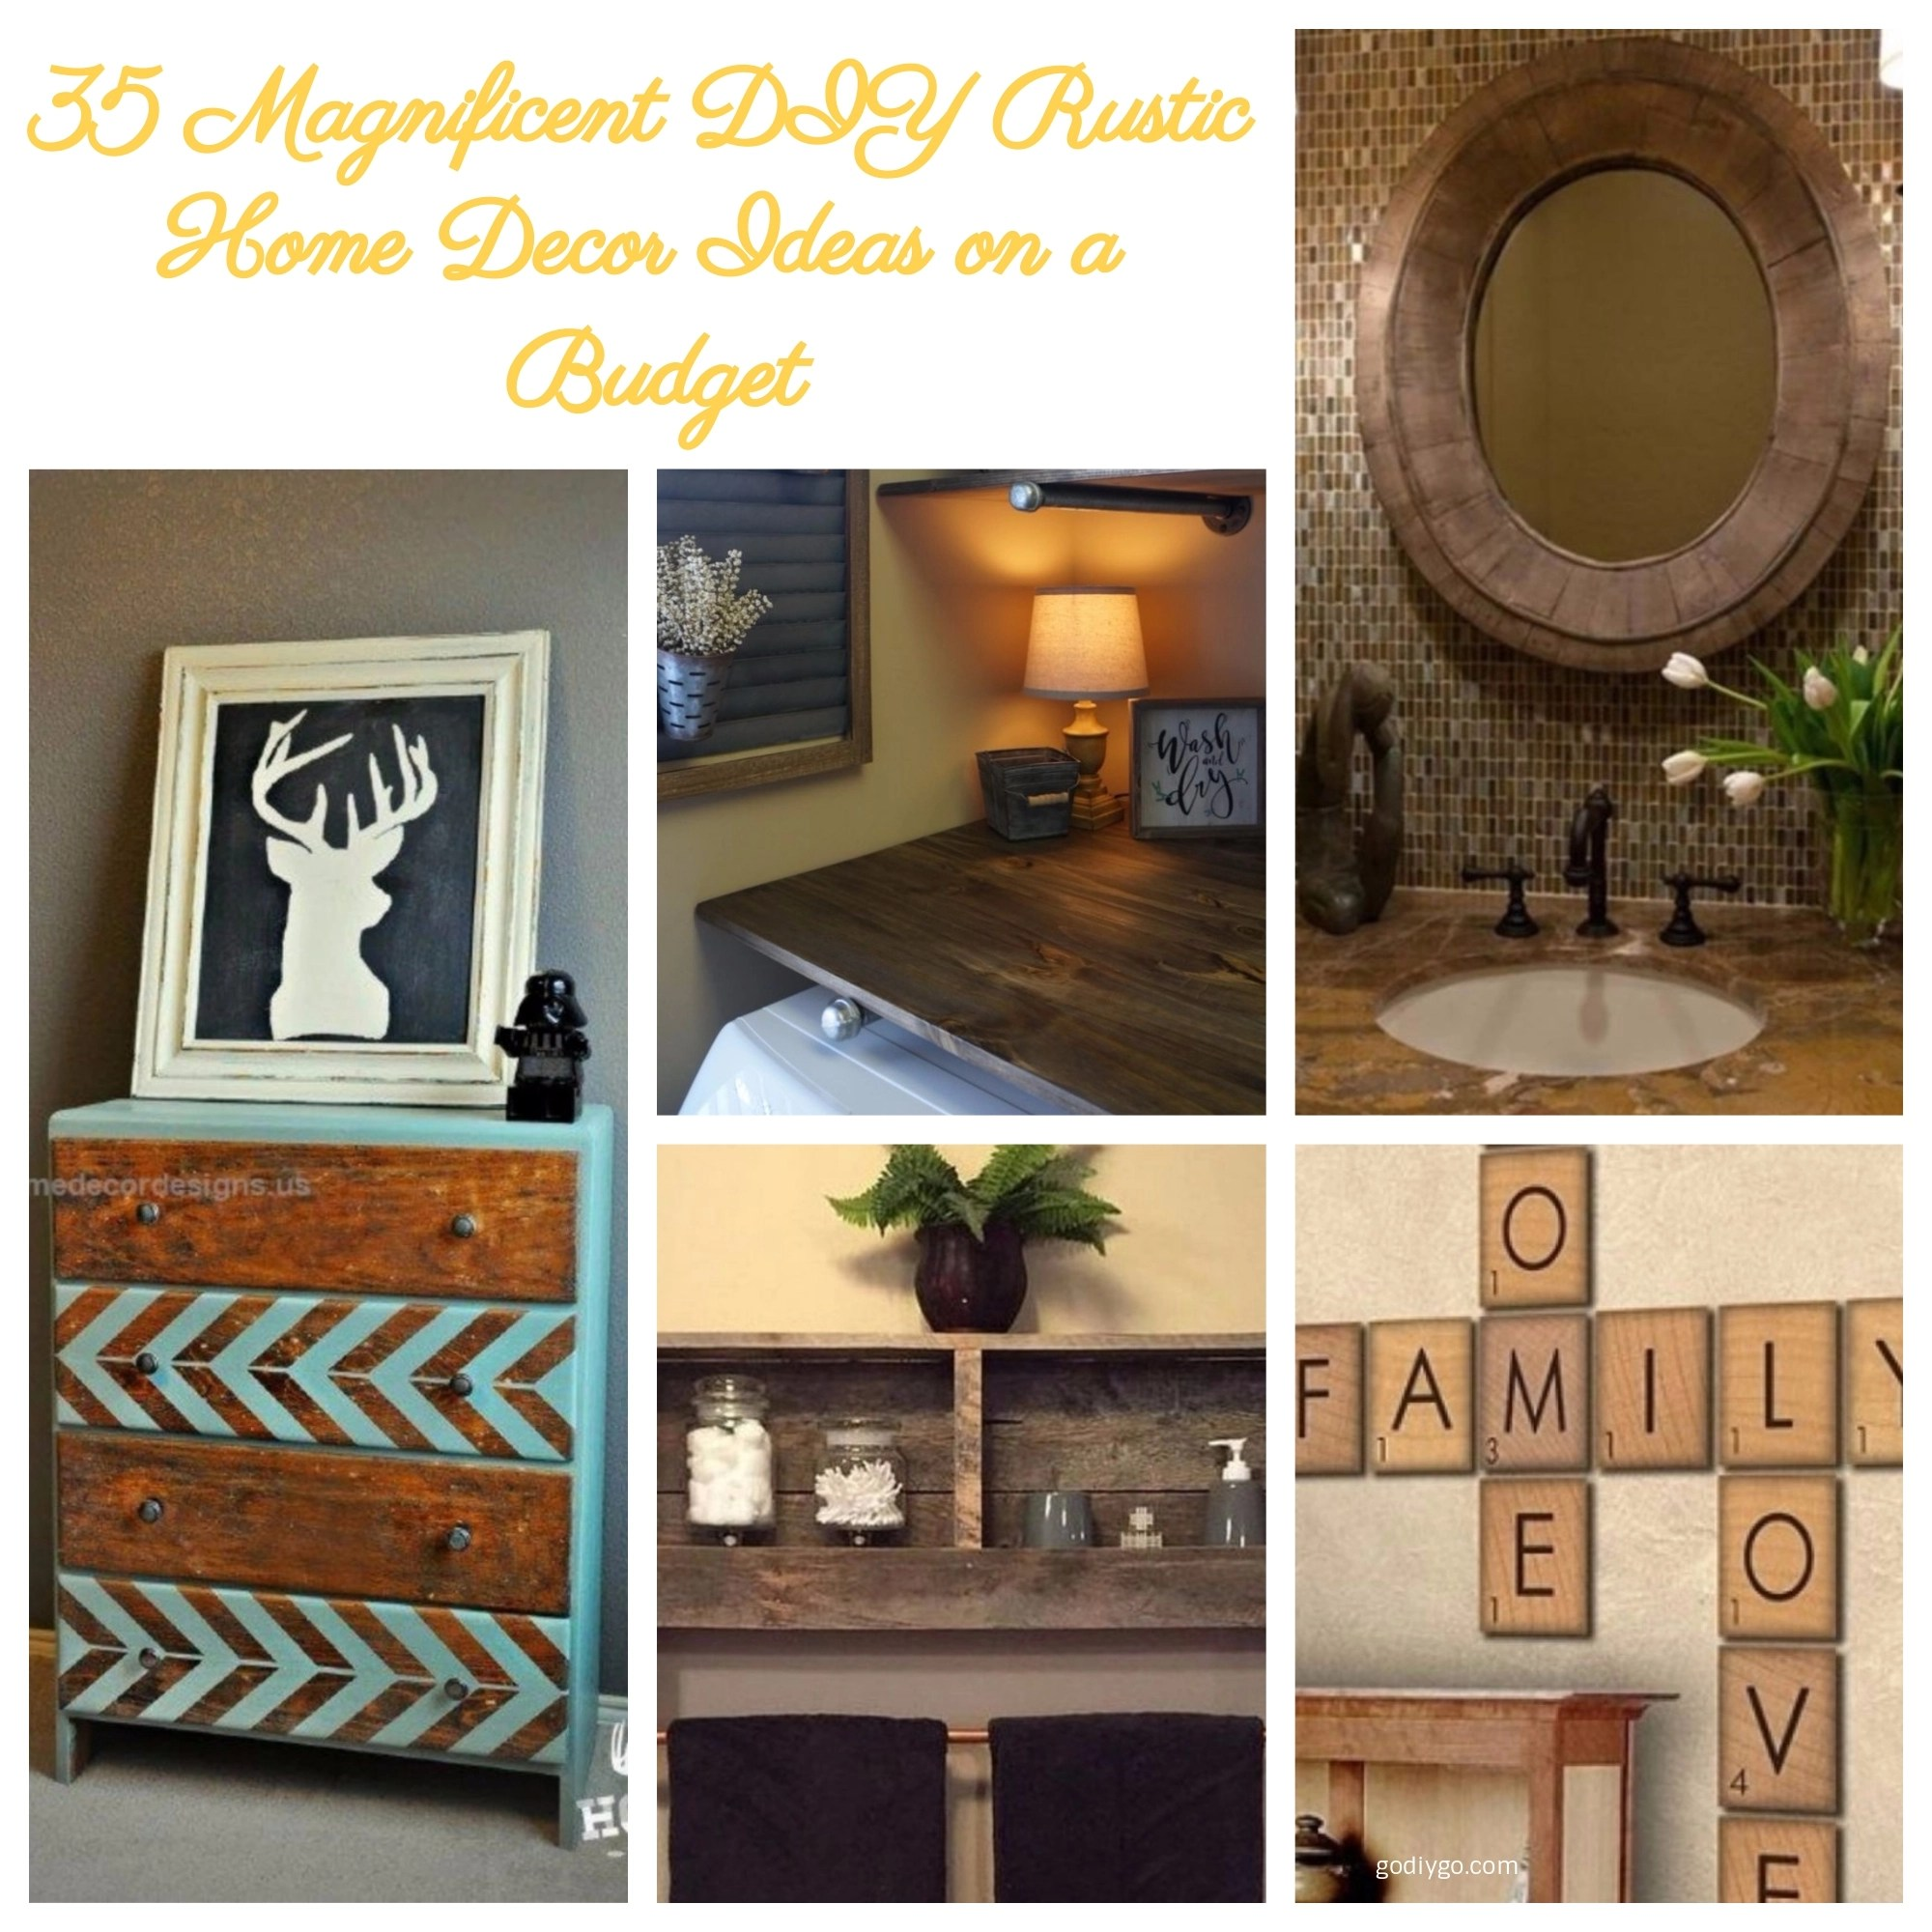 35 magnificent diy rustic home decor ideas on a budget for Cheap diy home decor